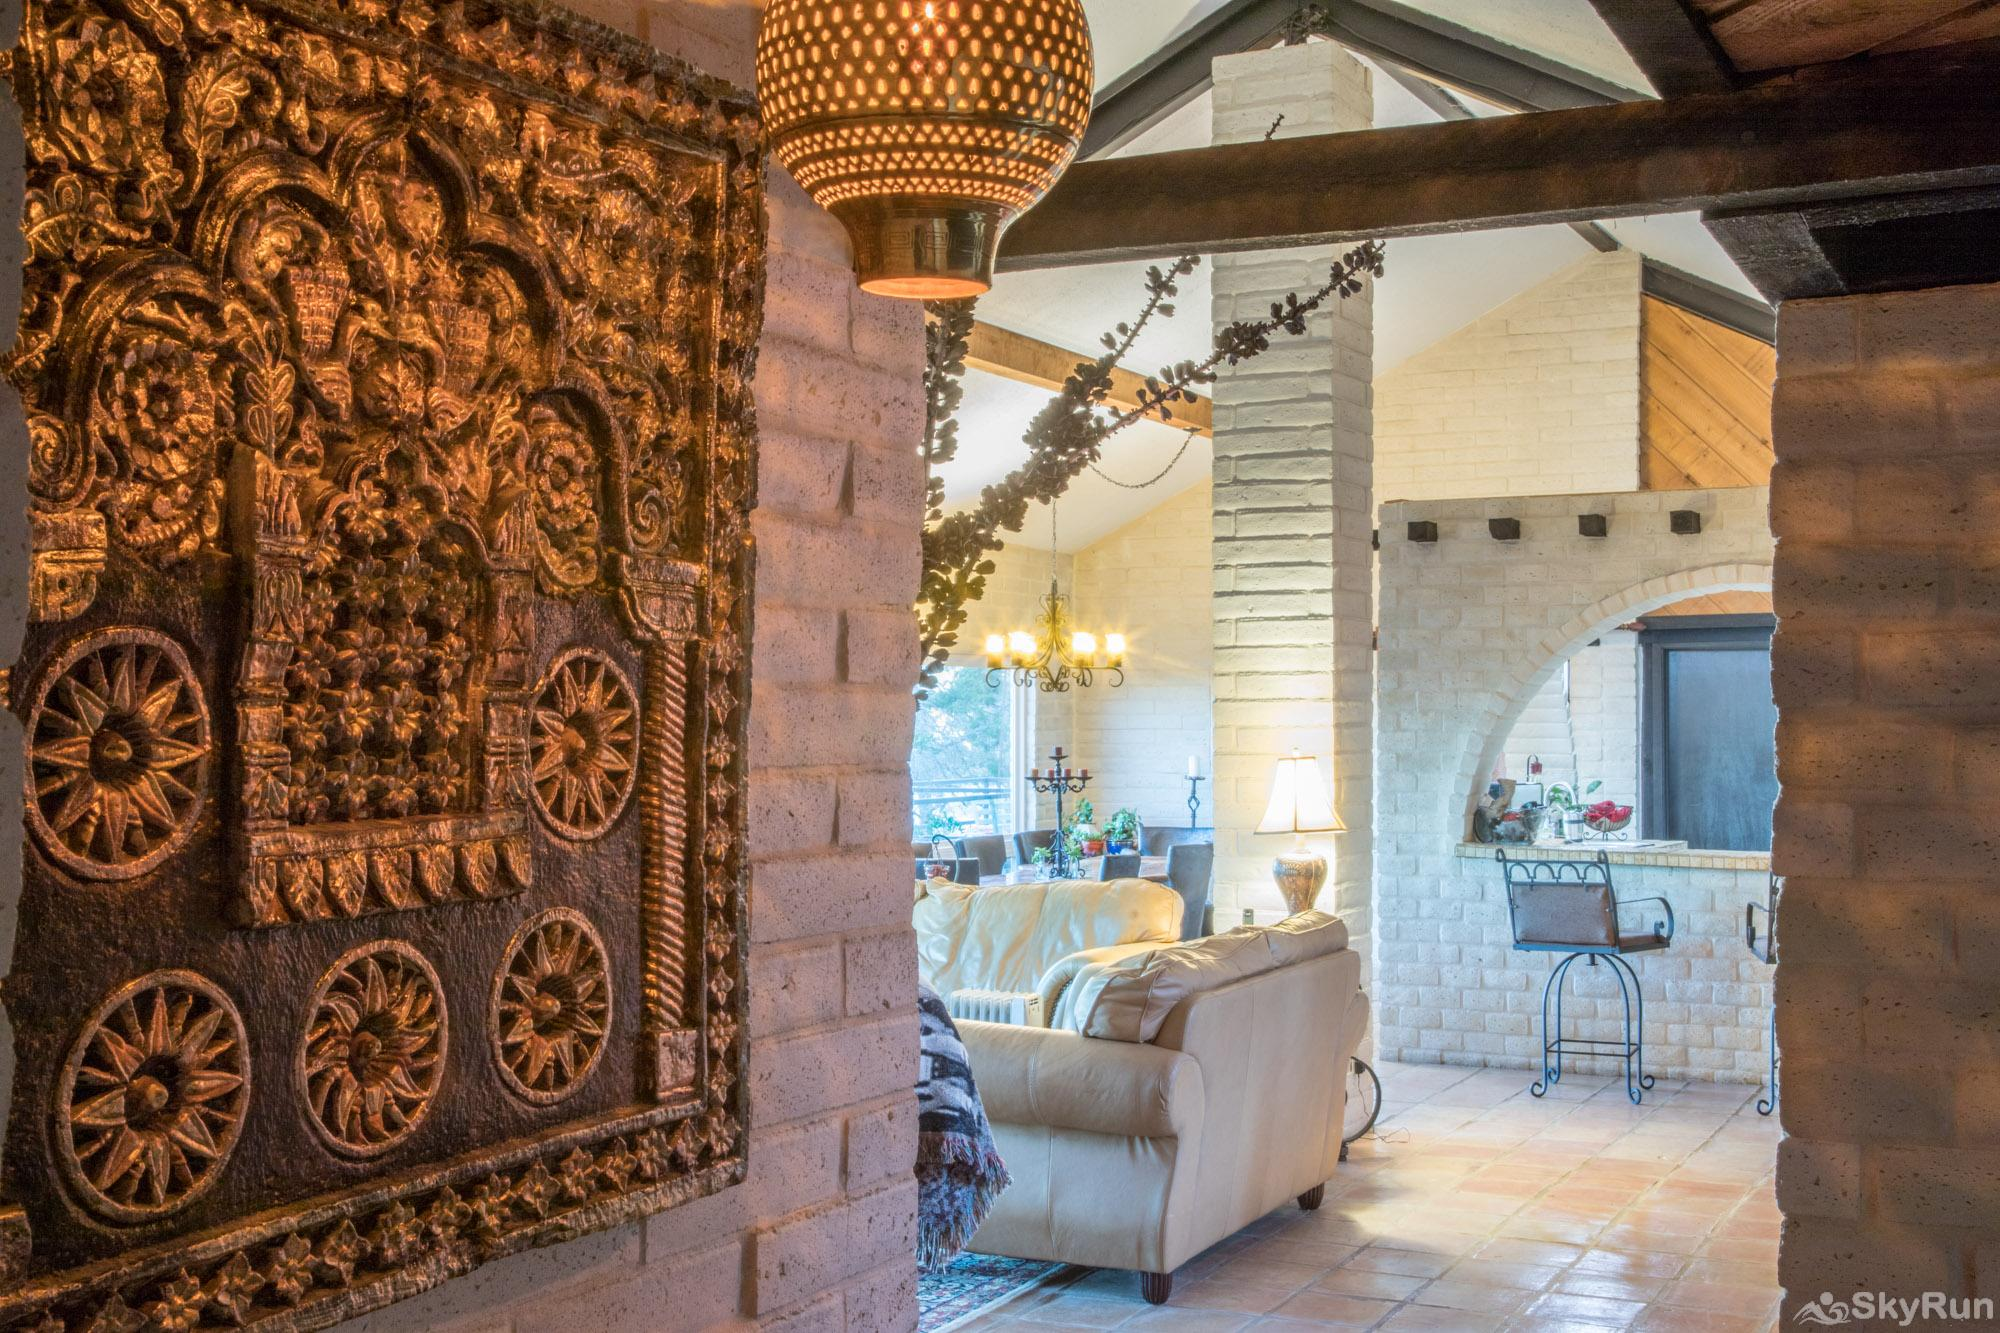 HACIENDA LAKE LODGE Entryway leading into charming living space